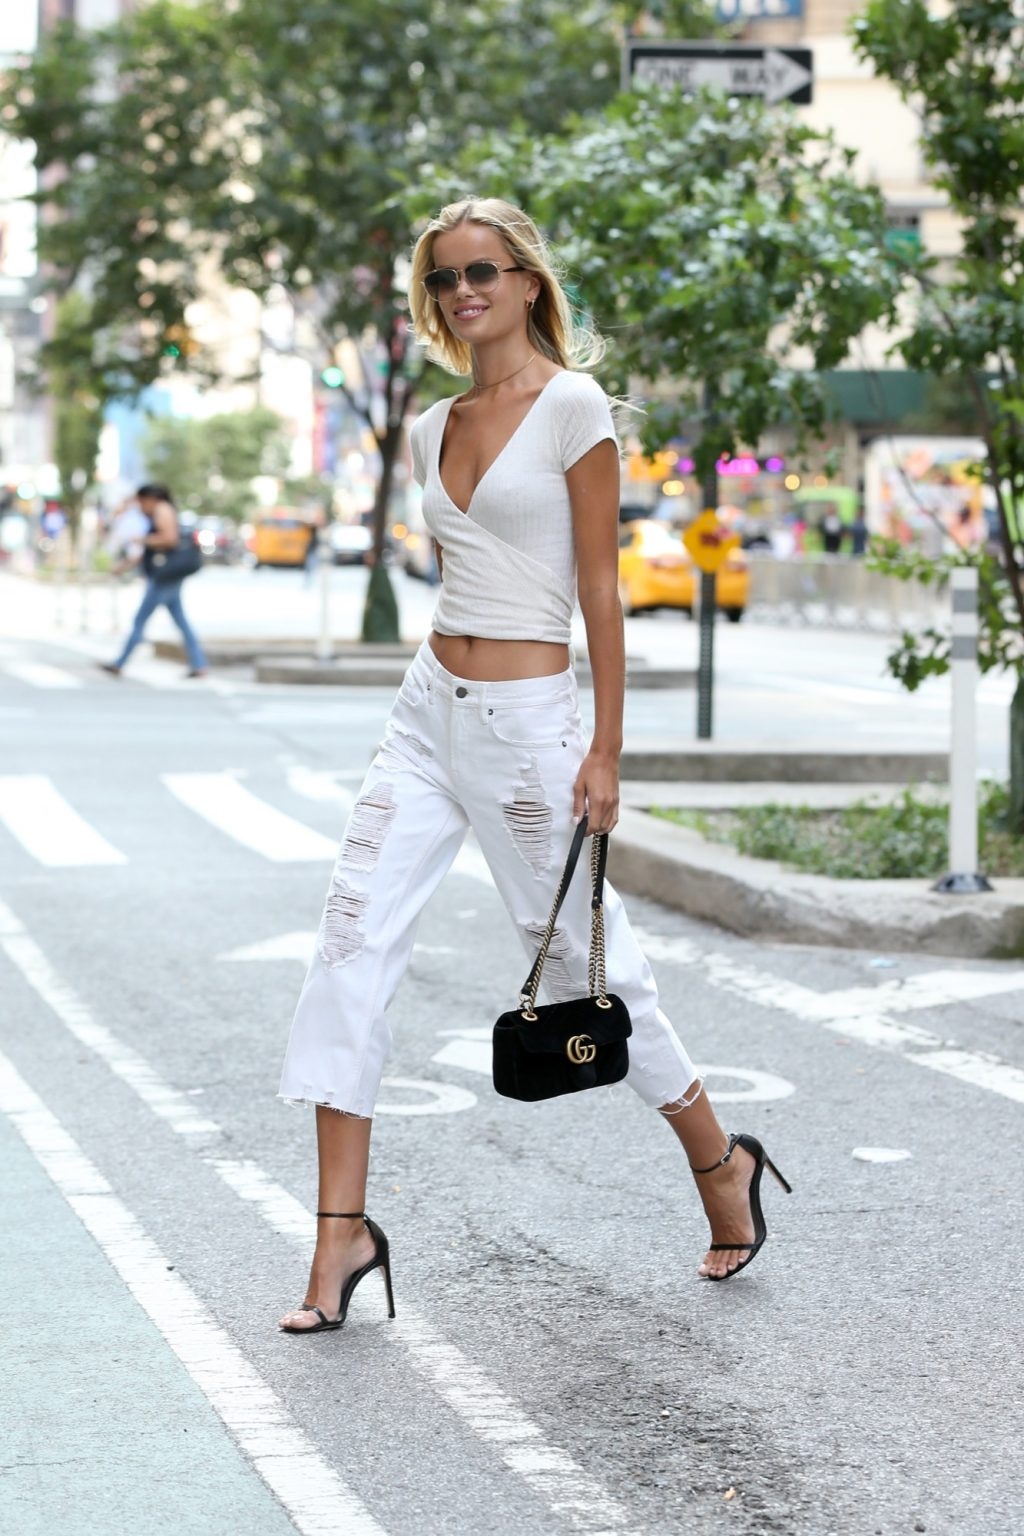 The Victoria's Secret Models Just Inspired Our Entire September Wardrobe